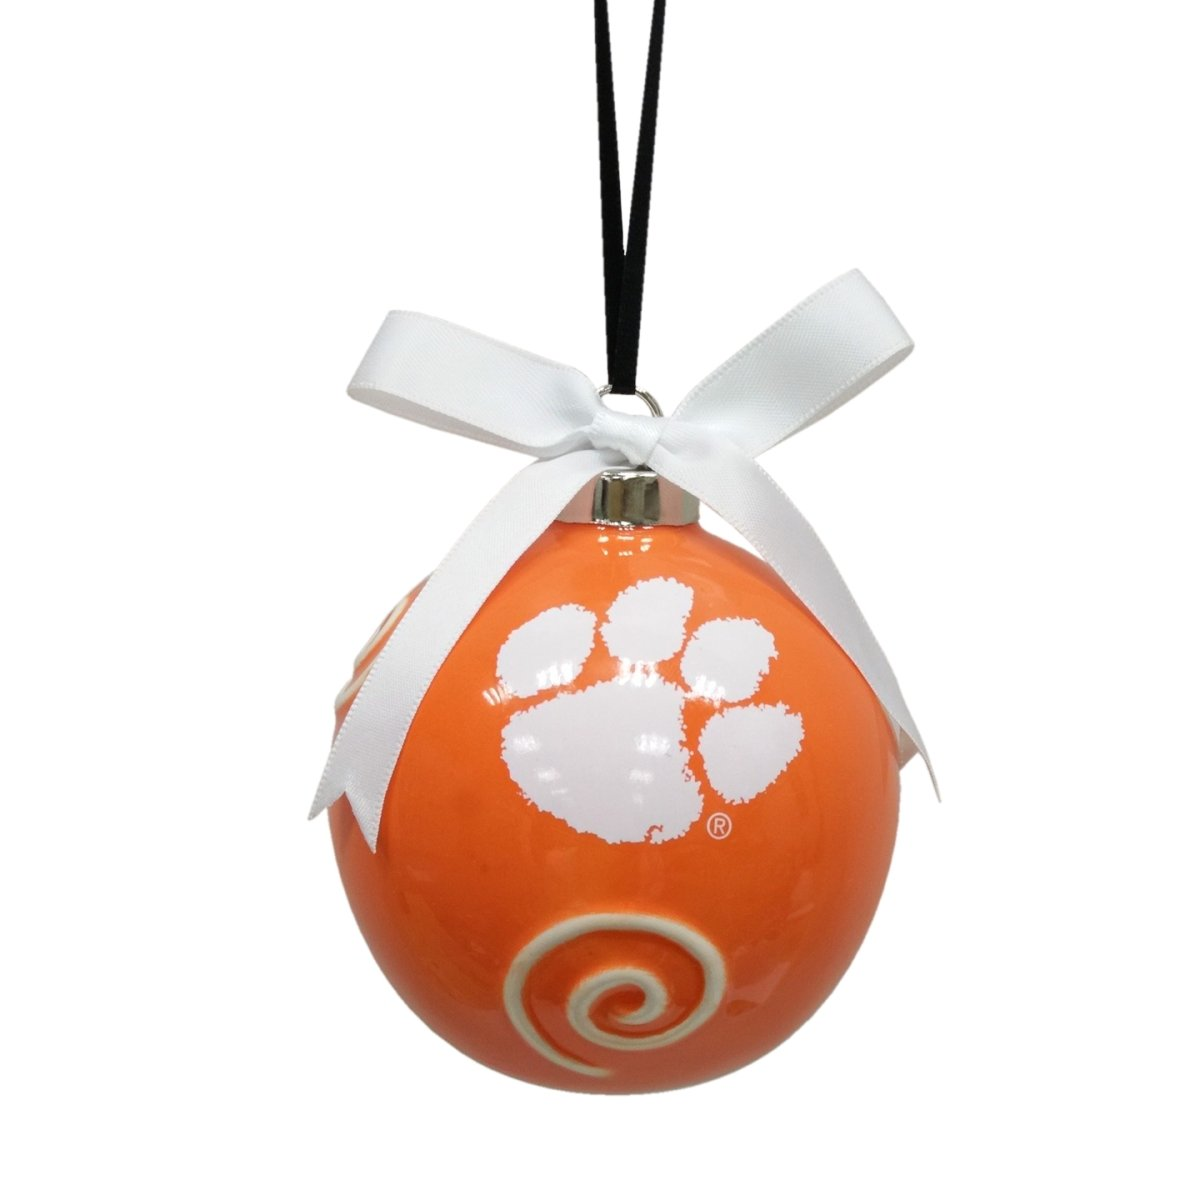 "3.5"" Ceramic Ball Ornament With Swirl and White Paw - Mr. Knickerbocker"